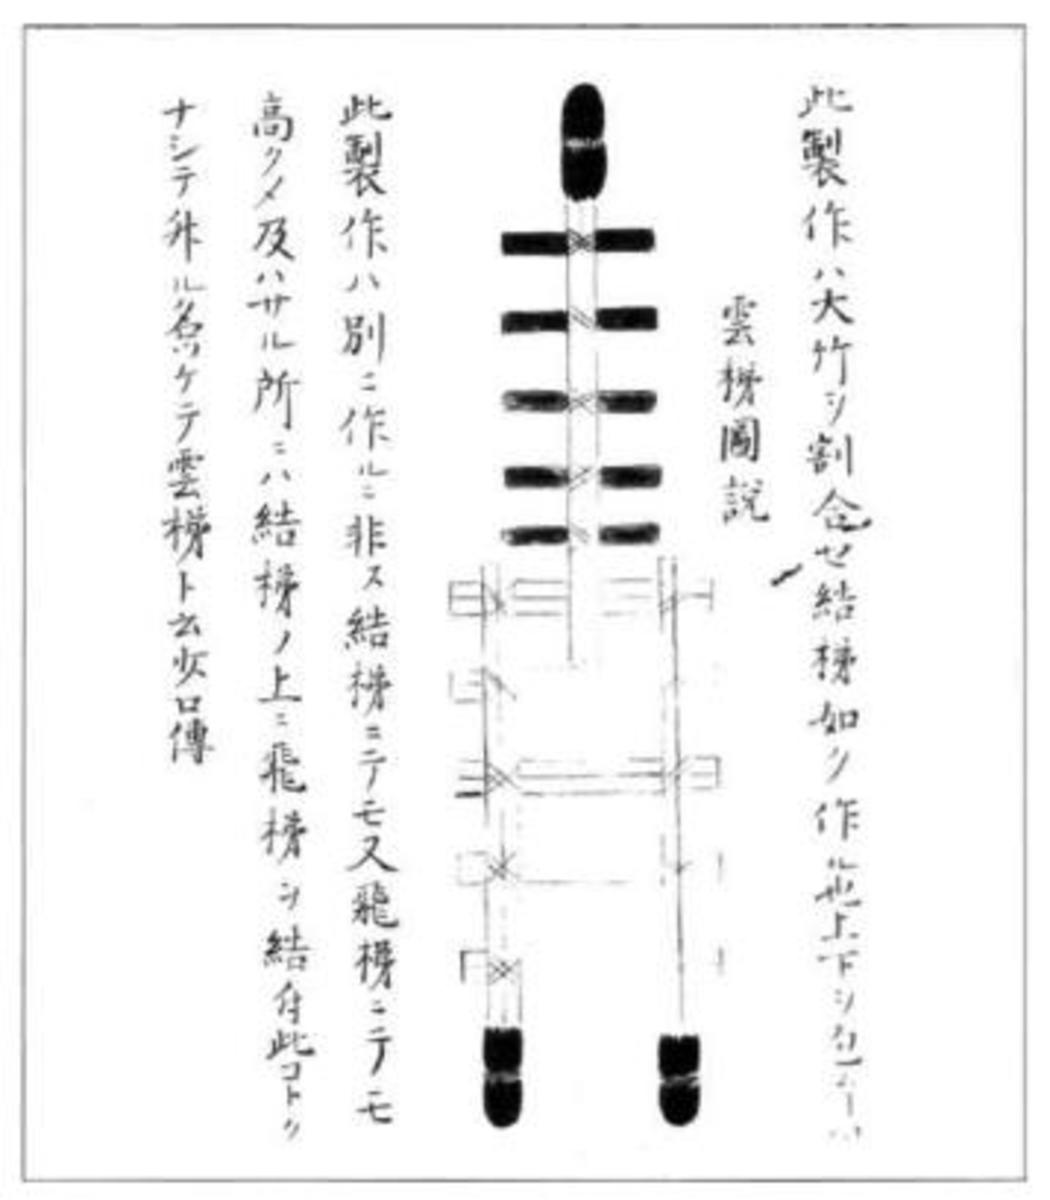 Light-weight ladder with a hinged section for climbing walls. Illustration form Bansen Shukai. Click to enlarge.